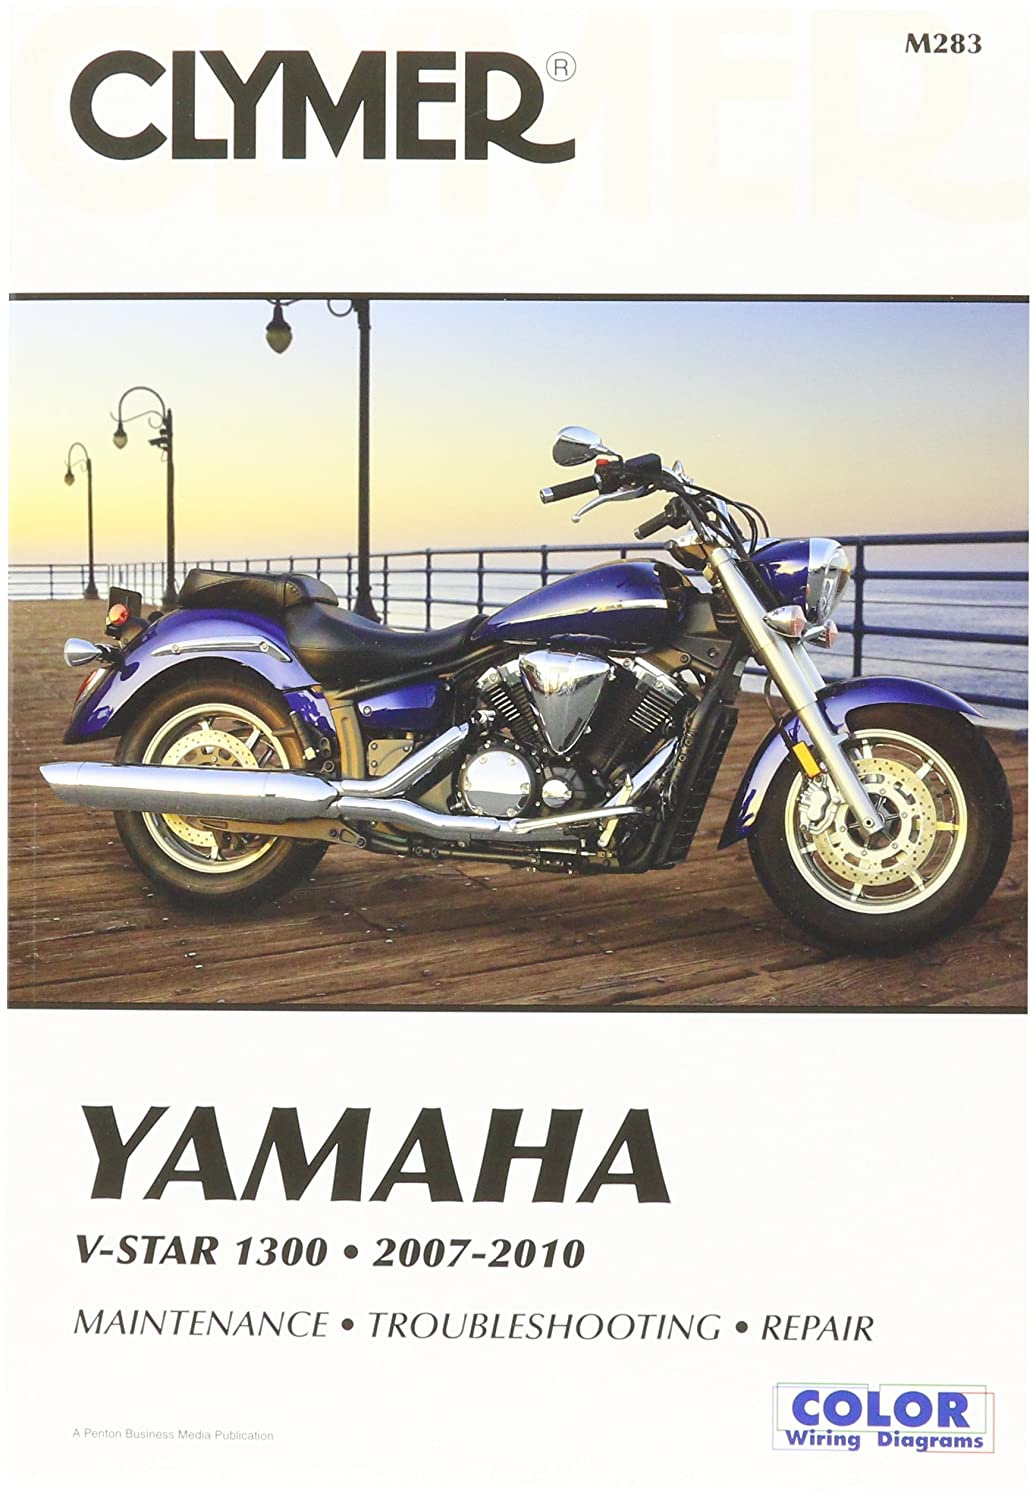 2000 yamaha warrior 350 wiring diagram be25 instrument wiring diagram for yamaha warrior 1700 wiring  wiring diagram for yamaha warrior